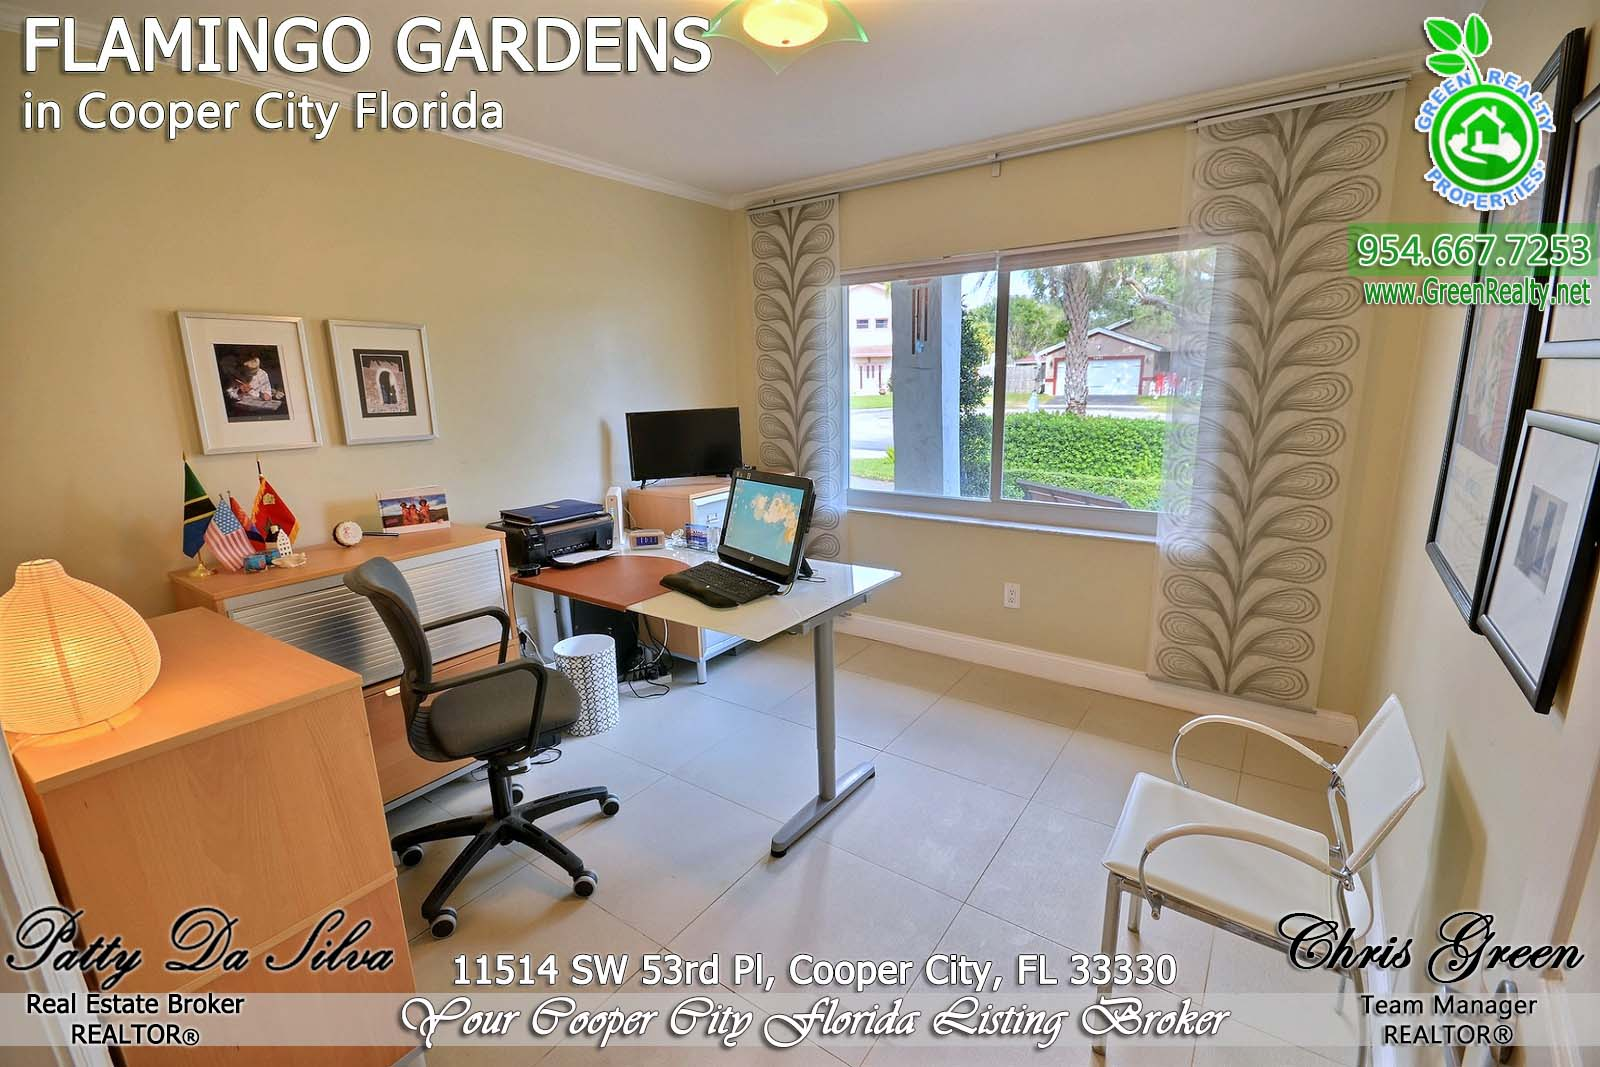 24 Flamingo Gardens Cooper City Homes For Sale (21)